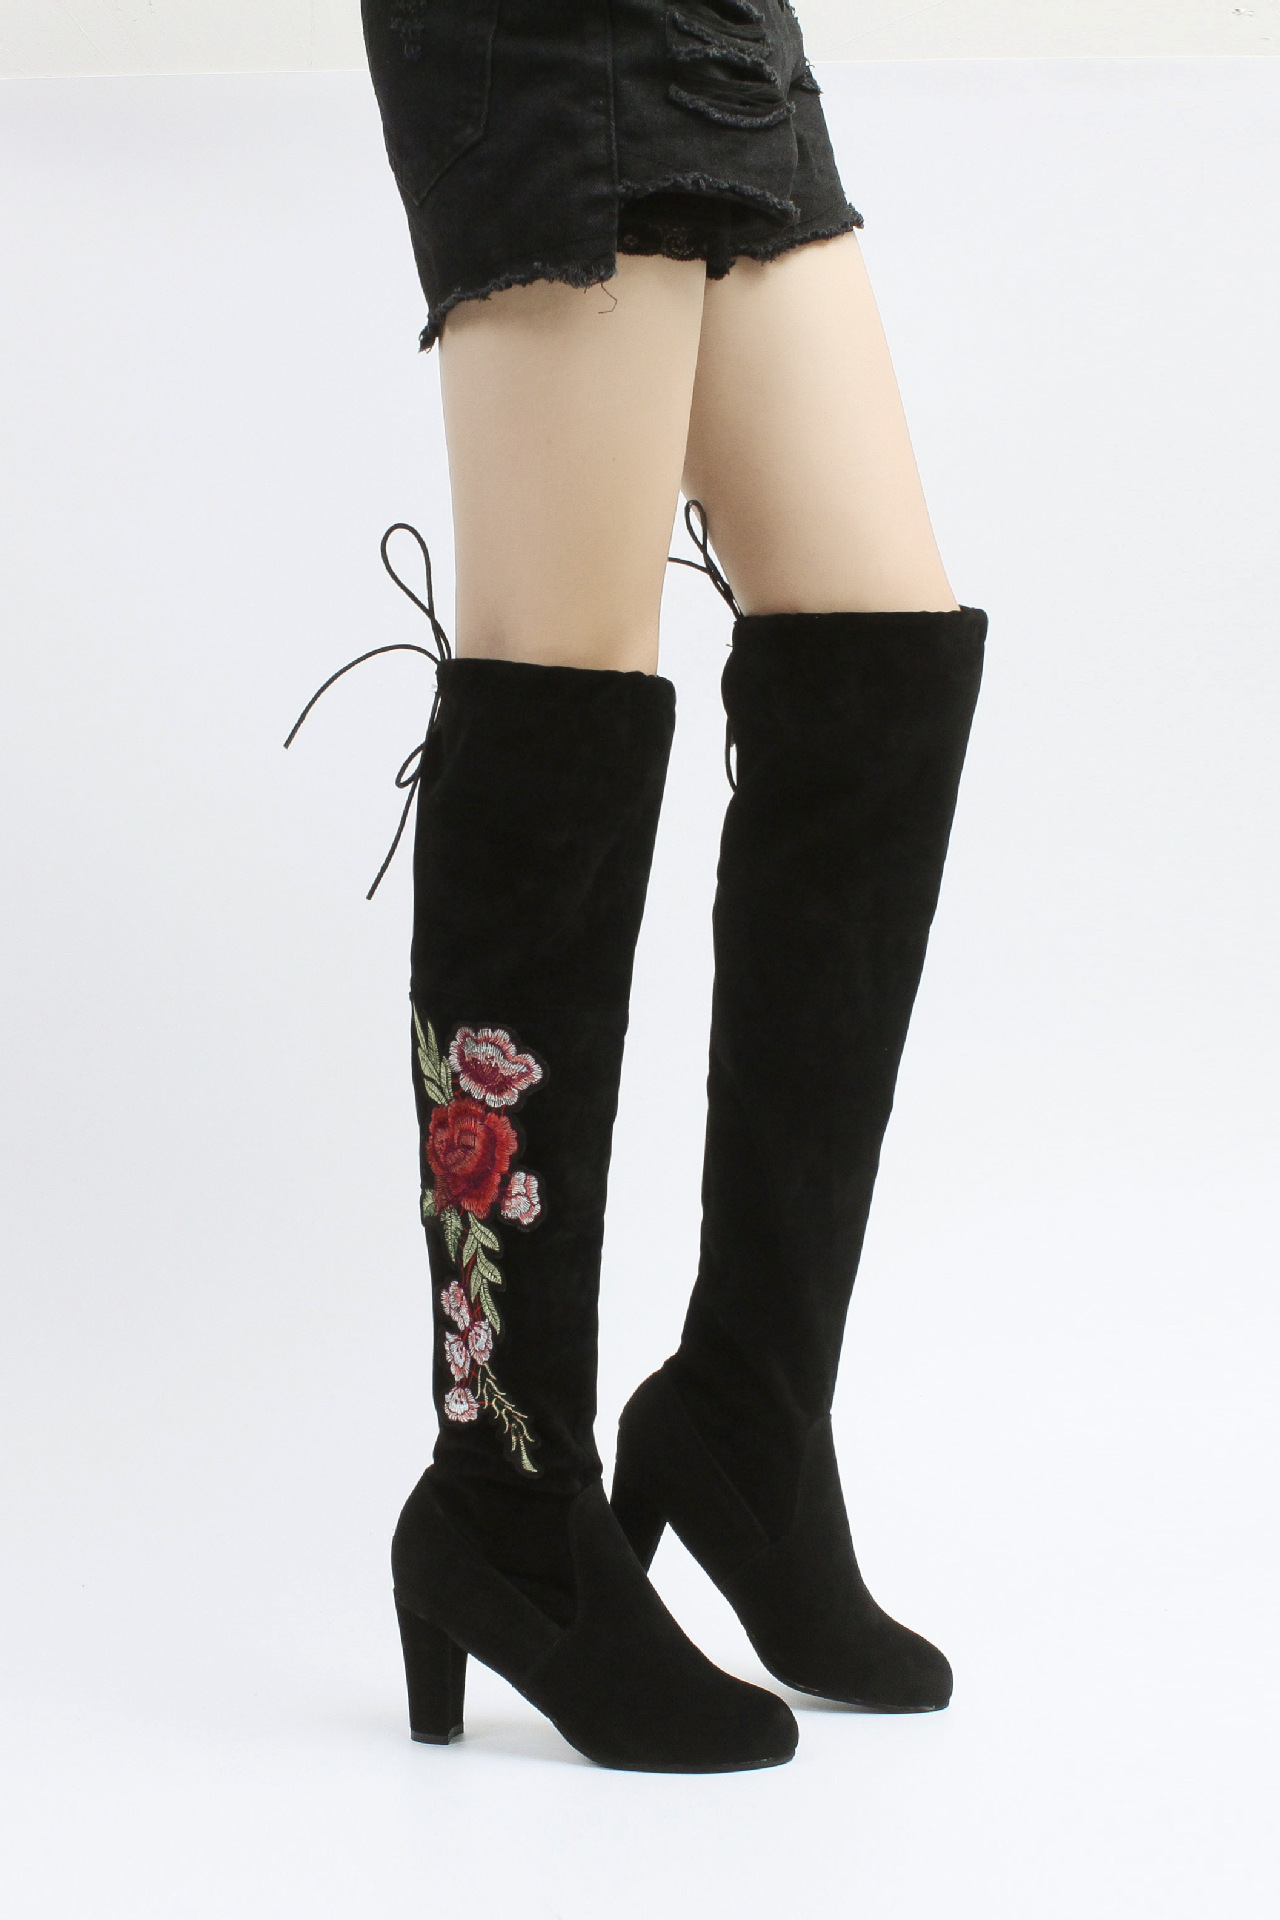 2018 NEW Sucrb Leather Women Over The Knee Boots Lace Up Sexy Hoof Heels Women Shoes Soild Winter Warm Size